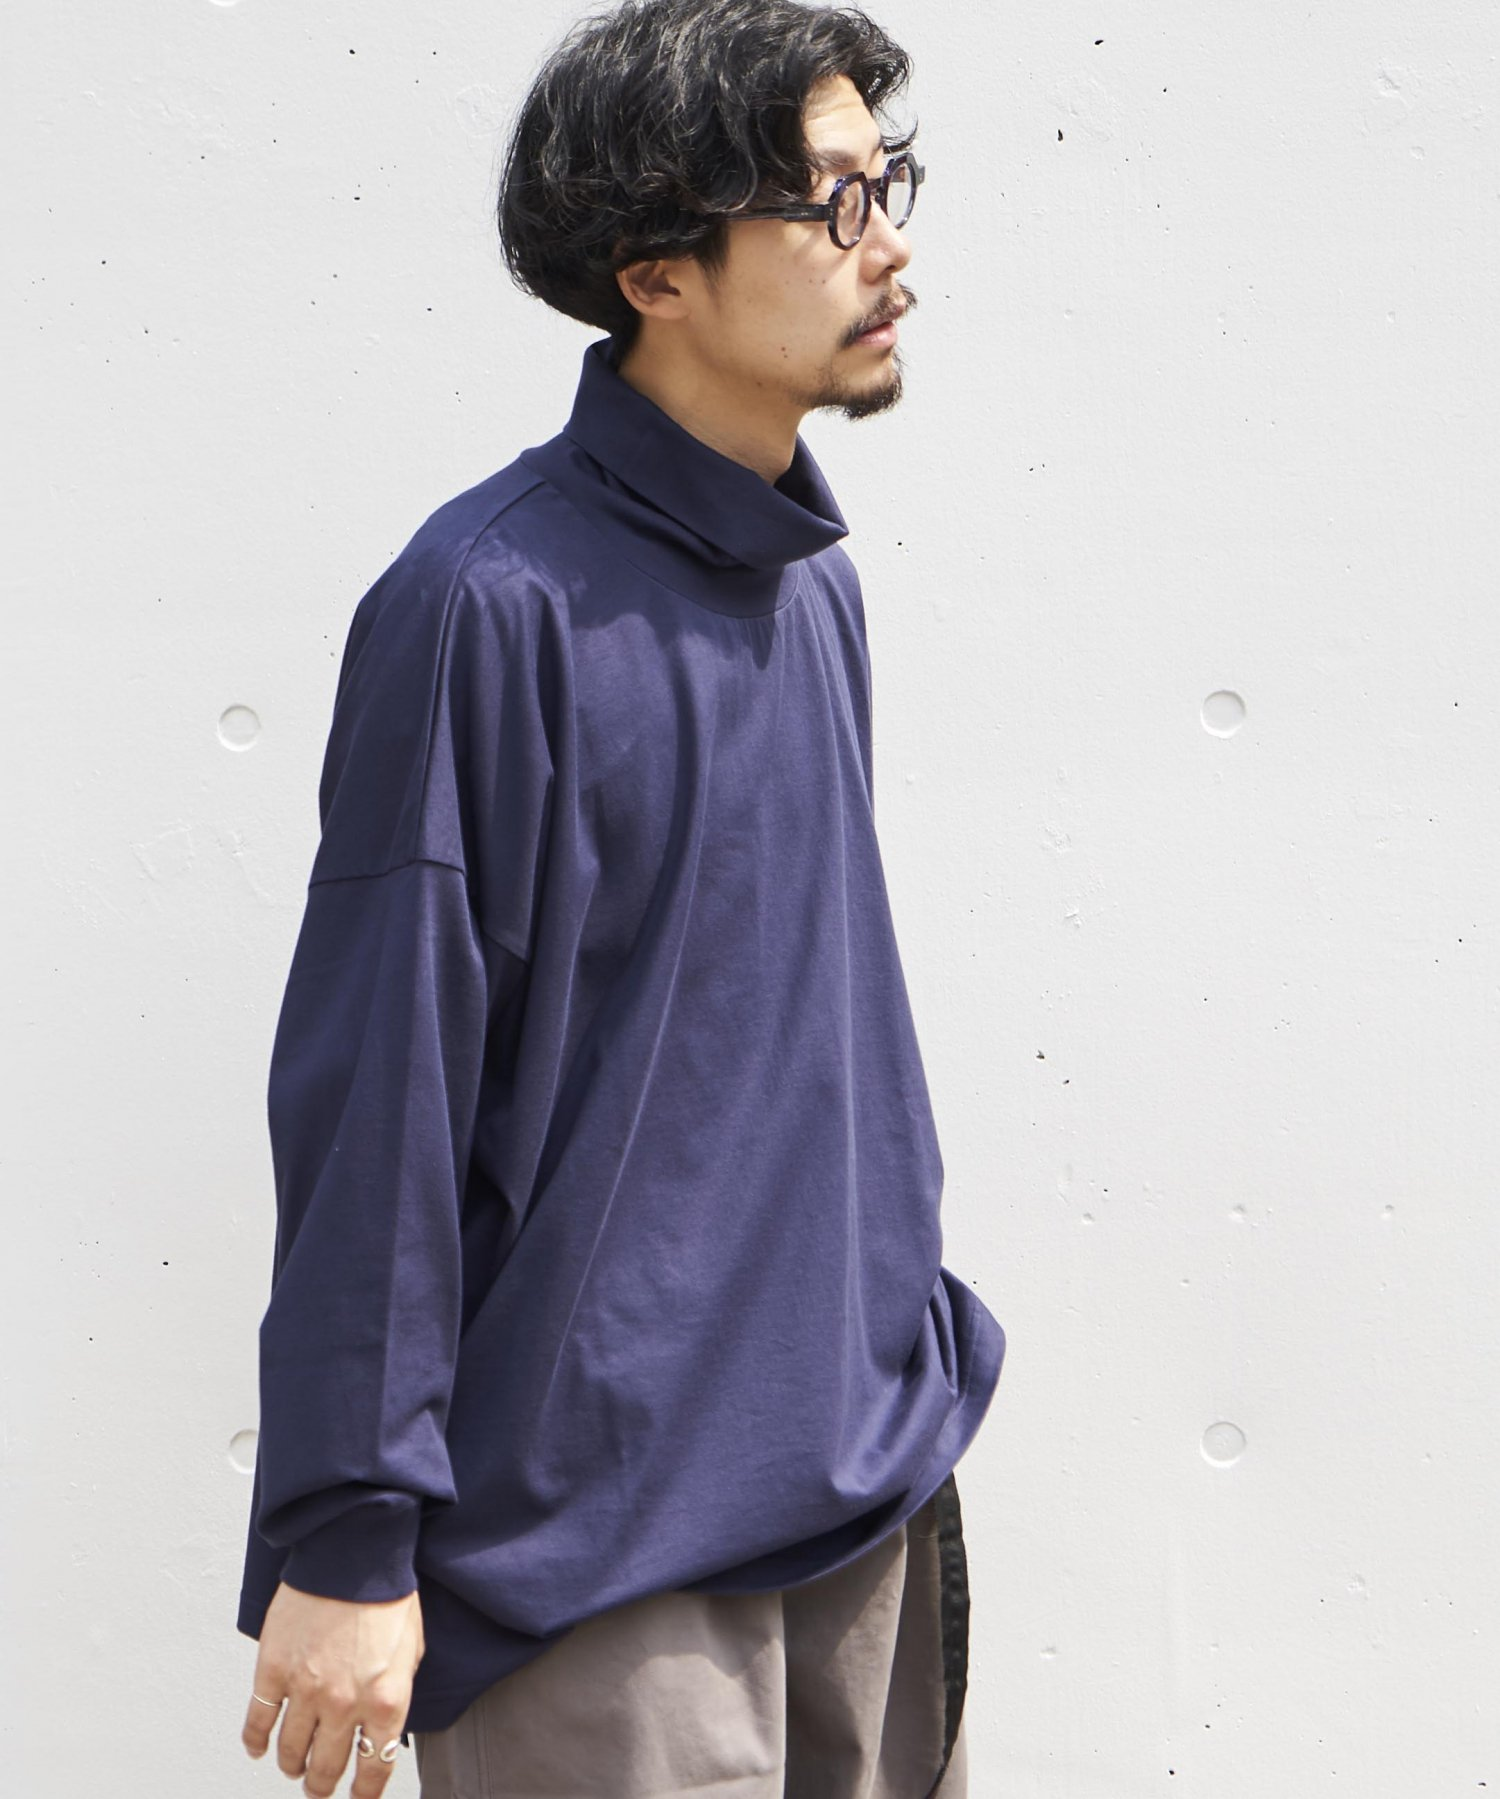 <img class='new_mark_img1' src='https://img.shop-pro.jp/img/new/icons15.gif' style='border:none;display:inline;margin:0px;padding:0px;width:auto;' />【REBIRTH PROJECT】SOUL COTTON ドロップショルダータートルネック NVY(9月上旬お届け)